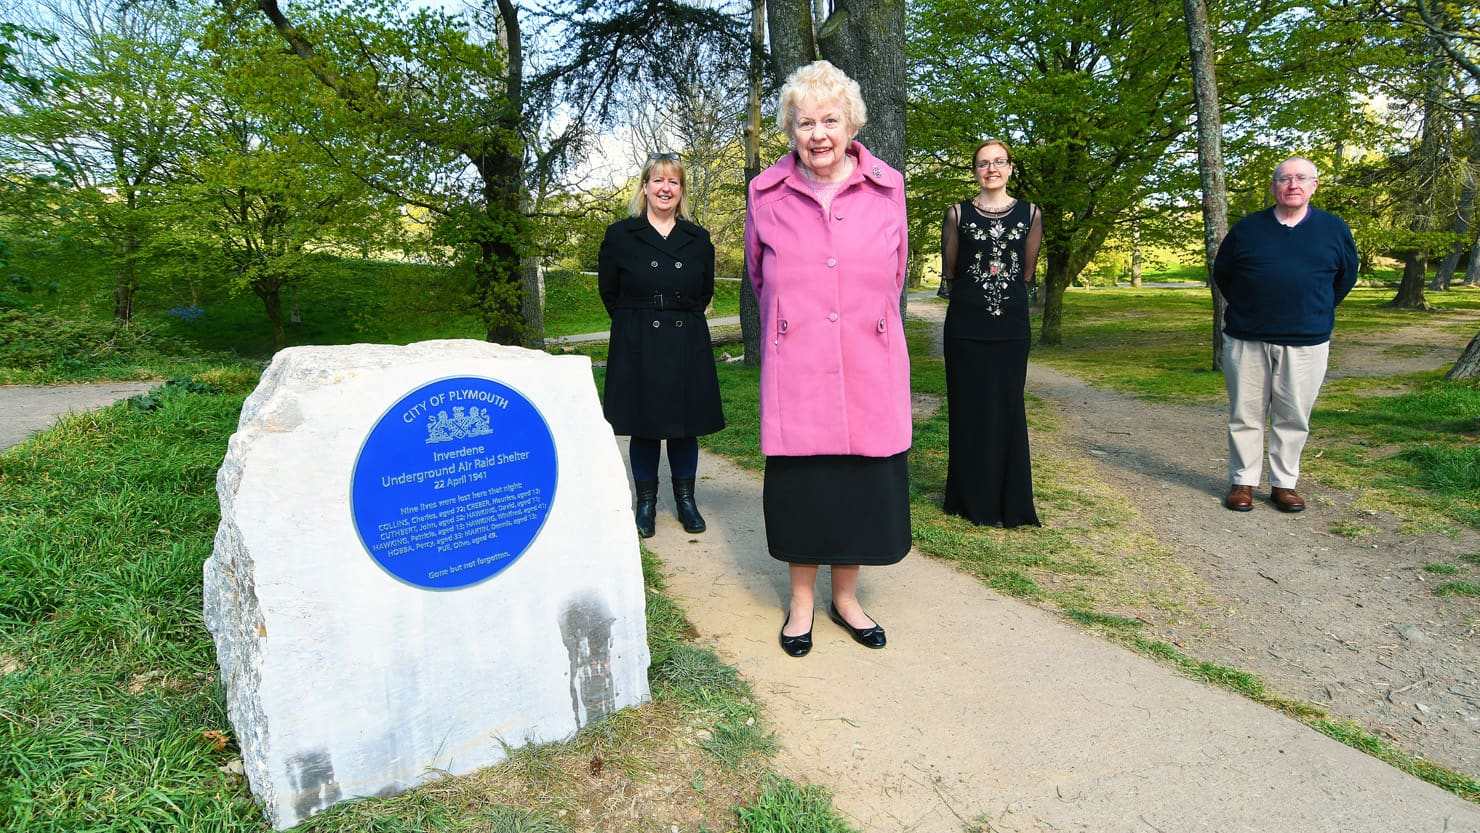 From L-R: Rachel Eyley (daughter of Shirley Stapley); Shirley Stapley; Louisa Blight, Collections Manager at The Box; Alan Barclay, Collections Assistant at The Box with the Inverdene air raid shelter plaque.